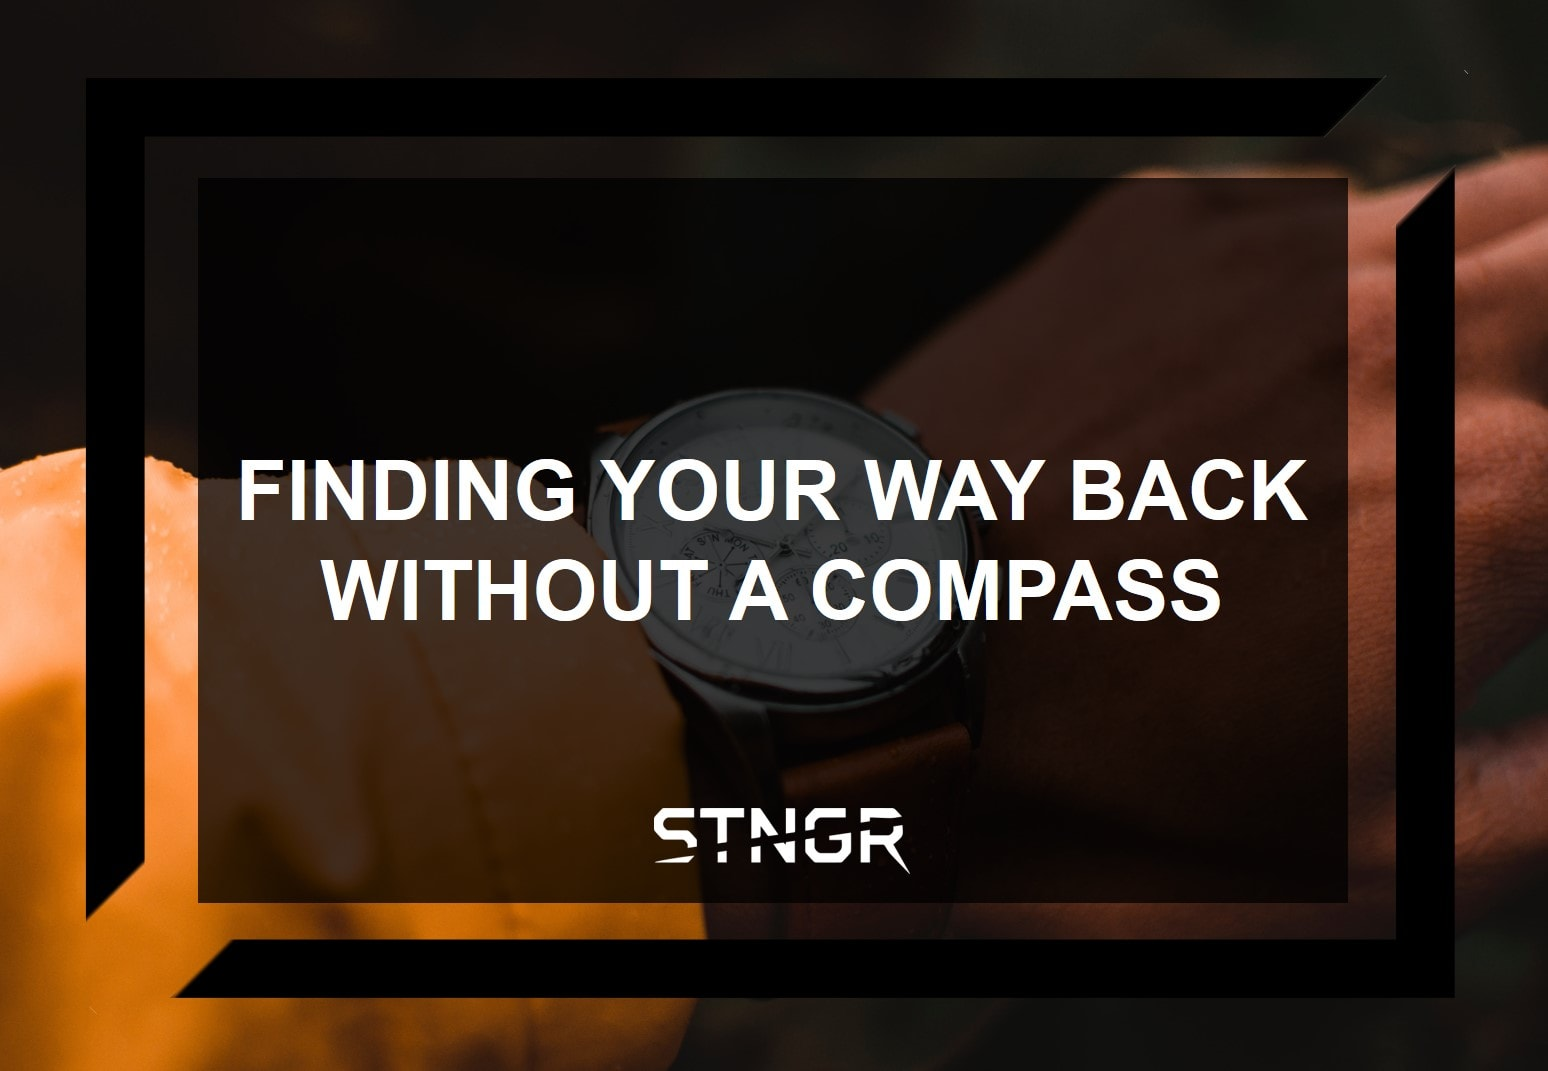 Finding Your Way Back Without a Compass